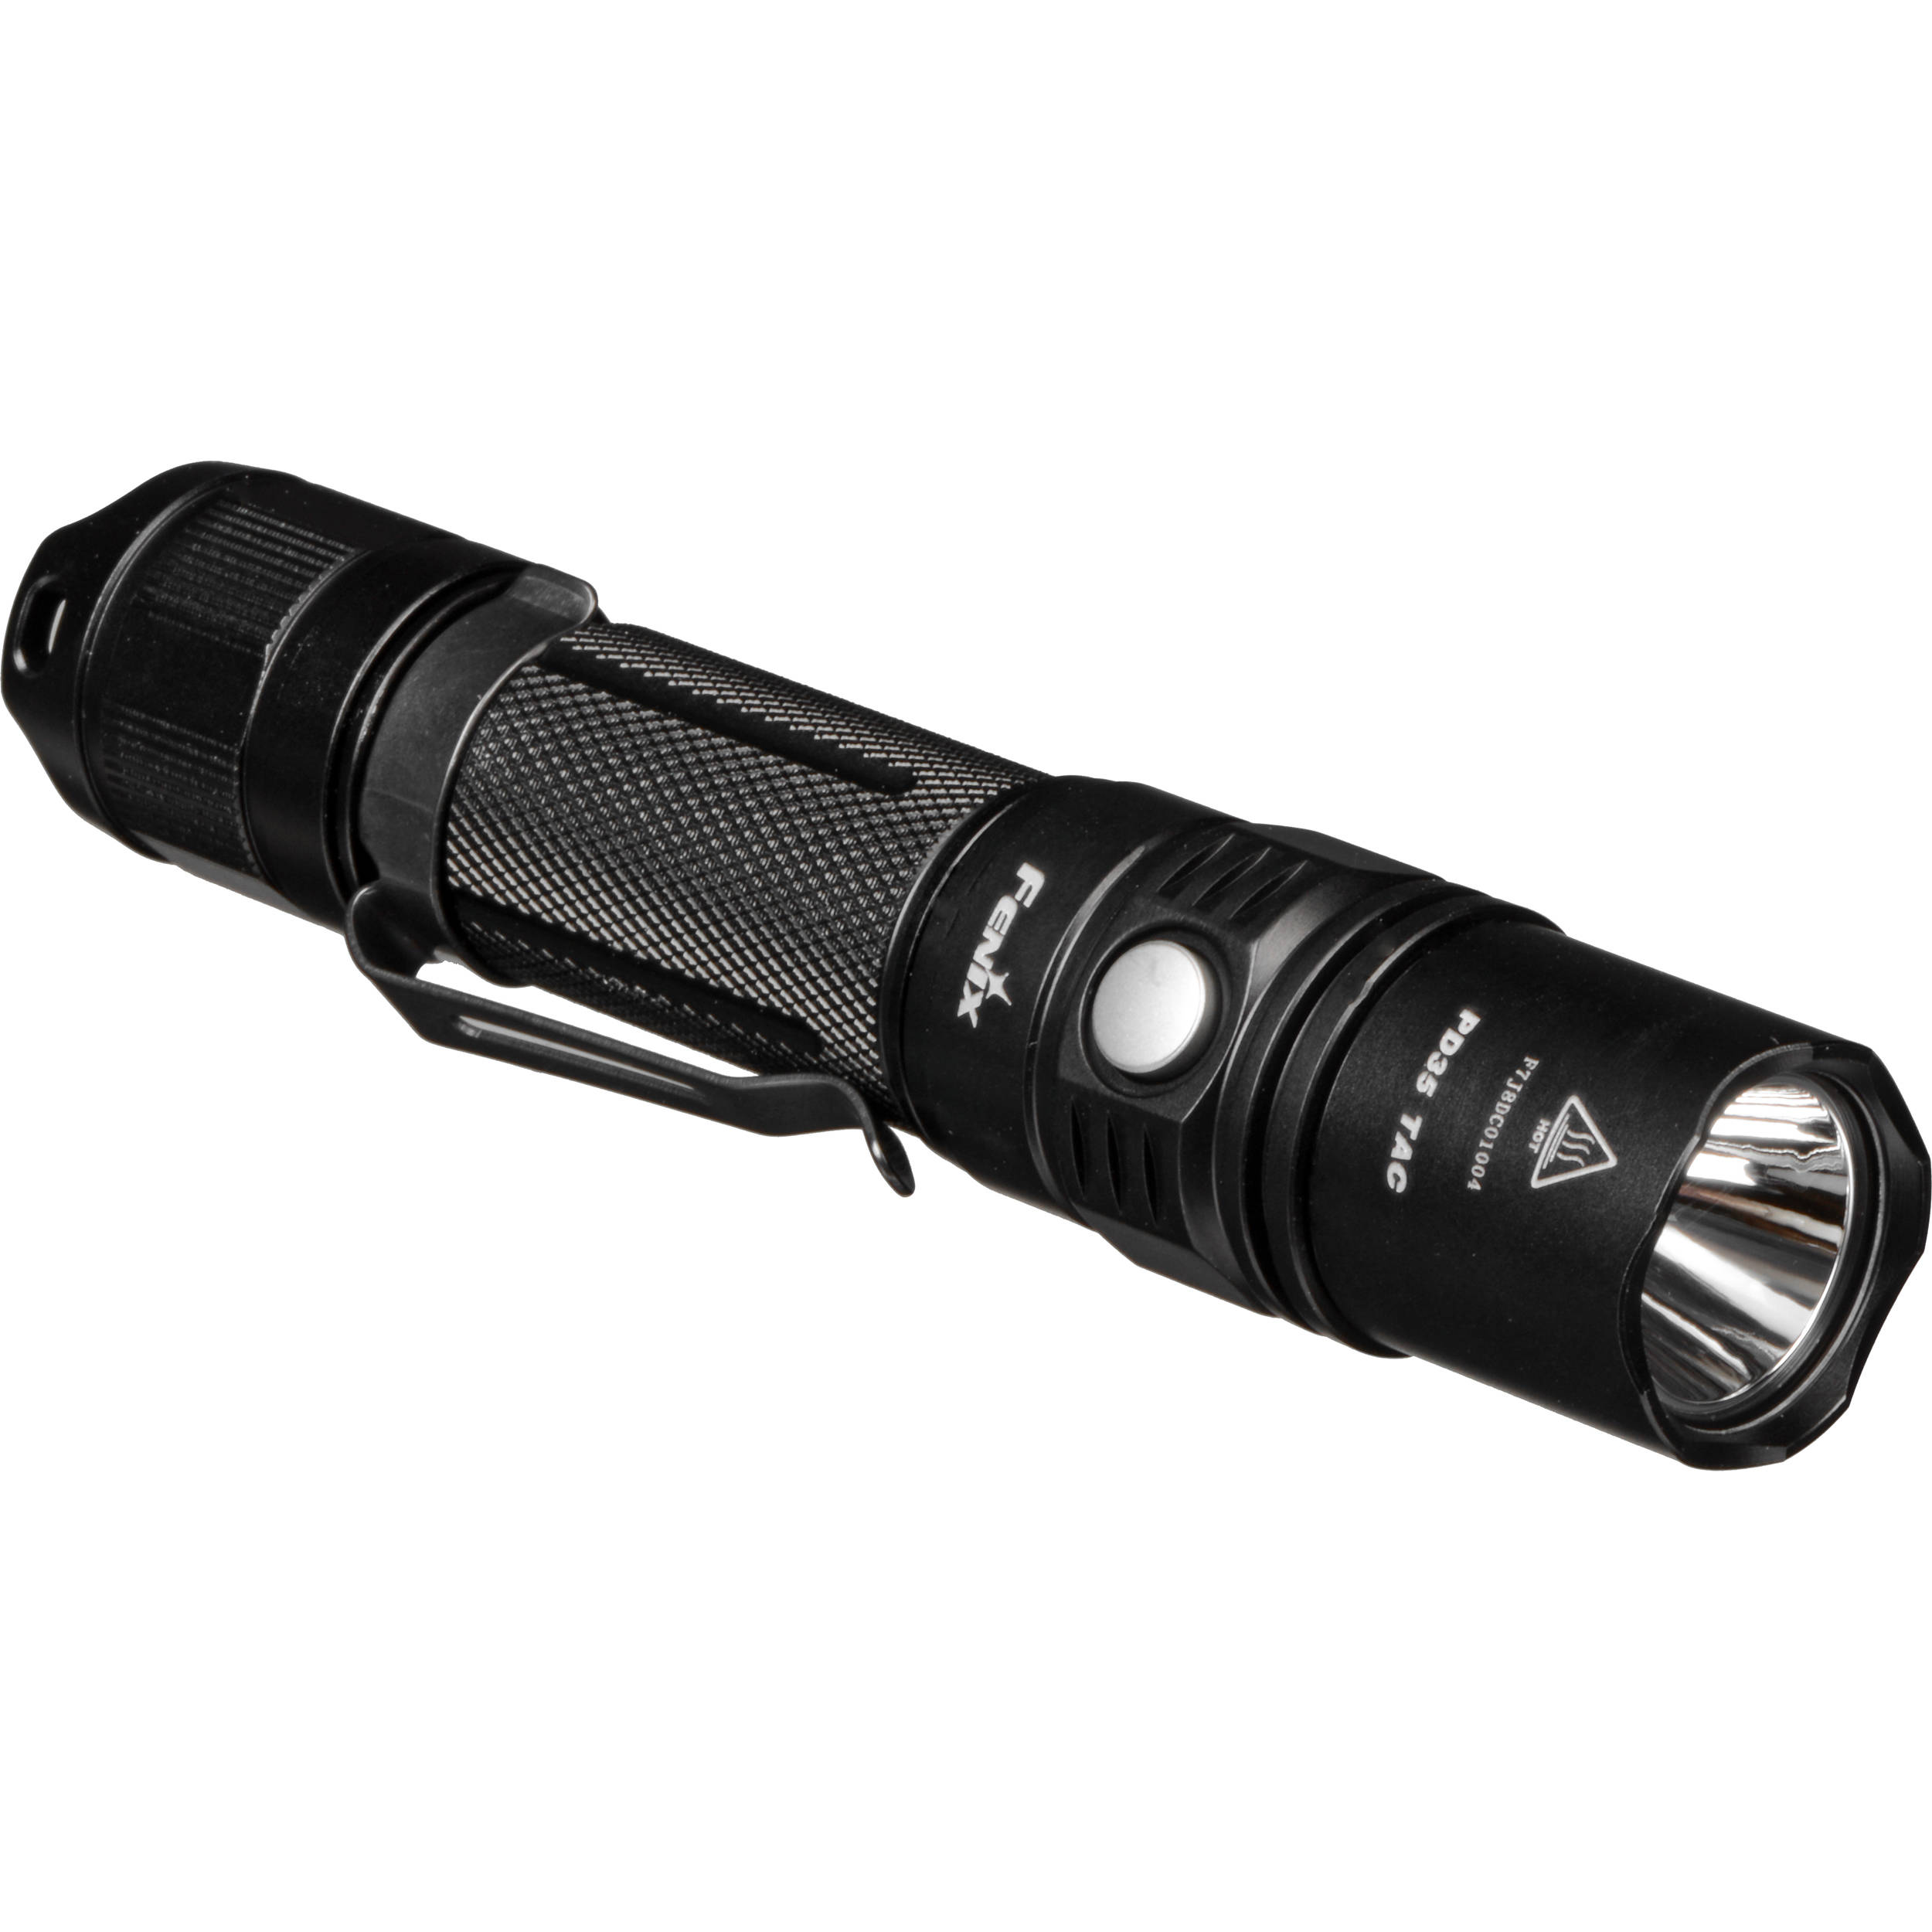 Fenix Flashlight PD35-TAC LED Flashlight FX-PD35TAC B&H Photo